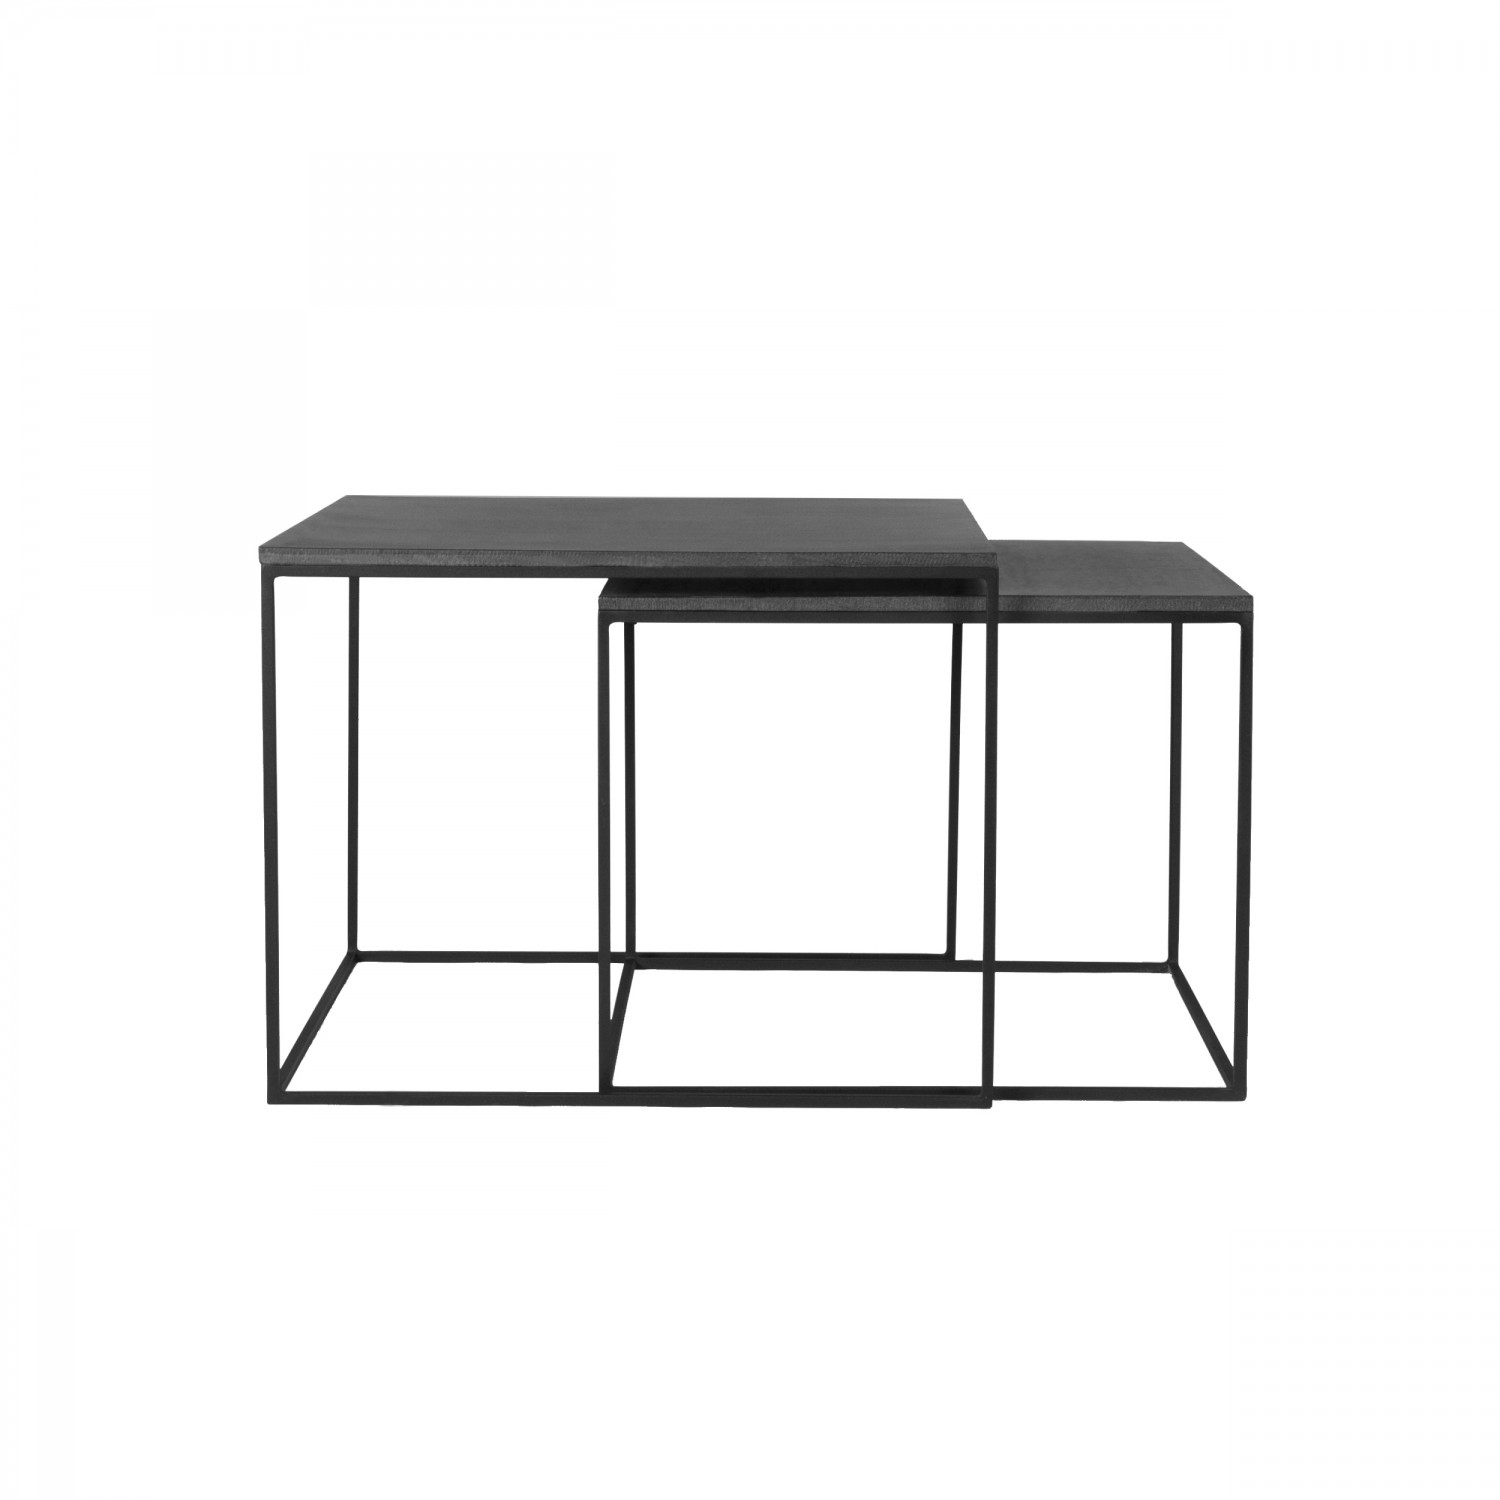 Table Basse Gigogne Carree Ordesa Lavastone Lot De 2 Koya Design